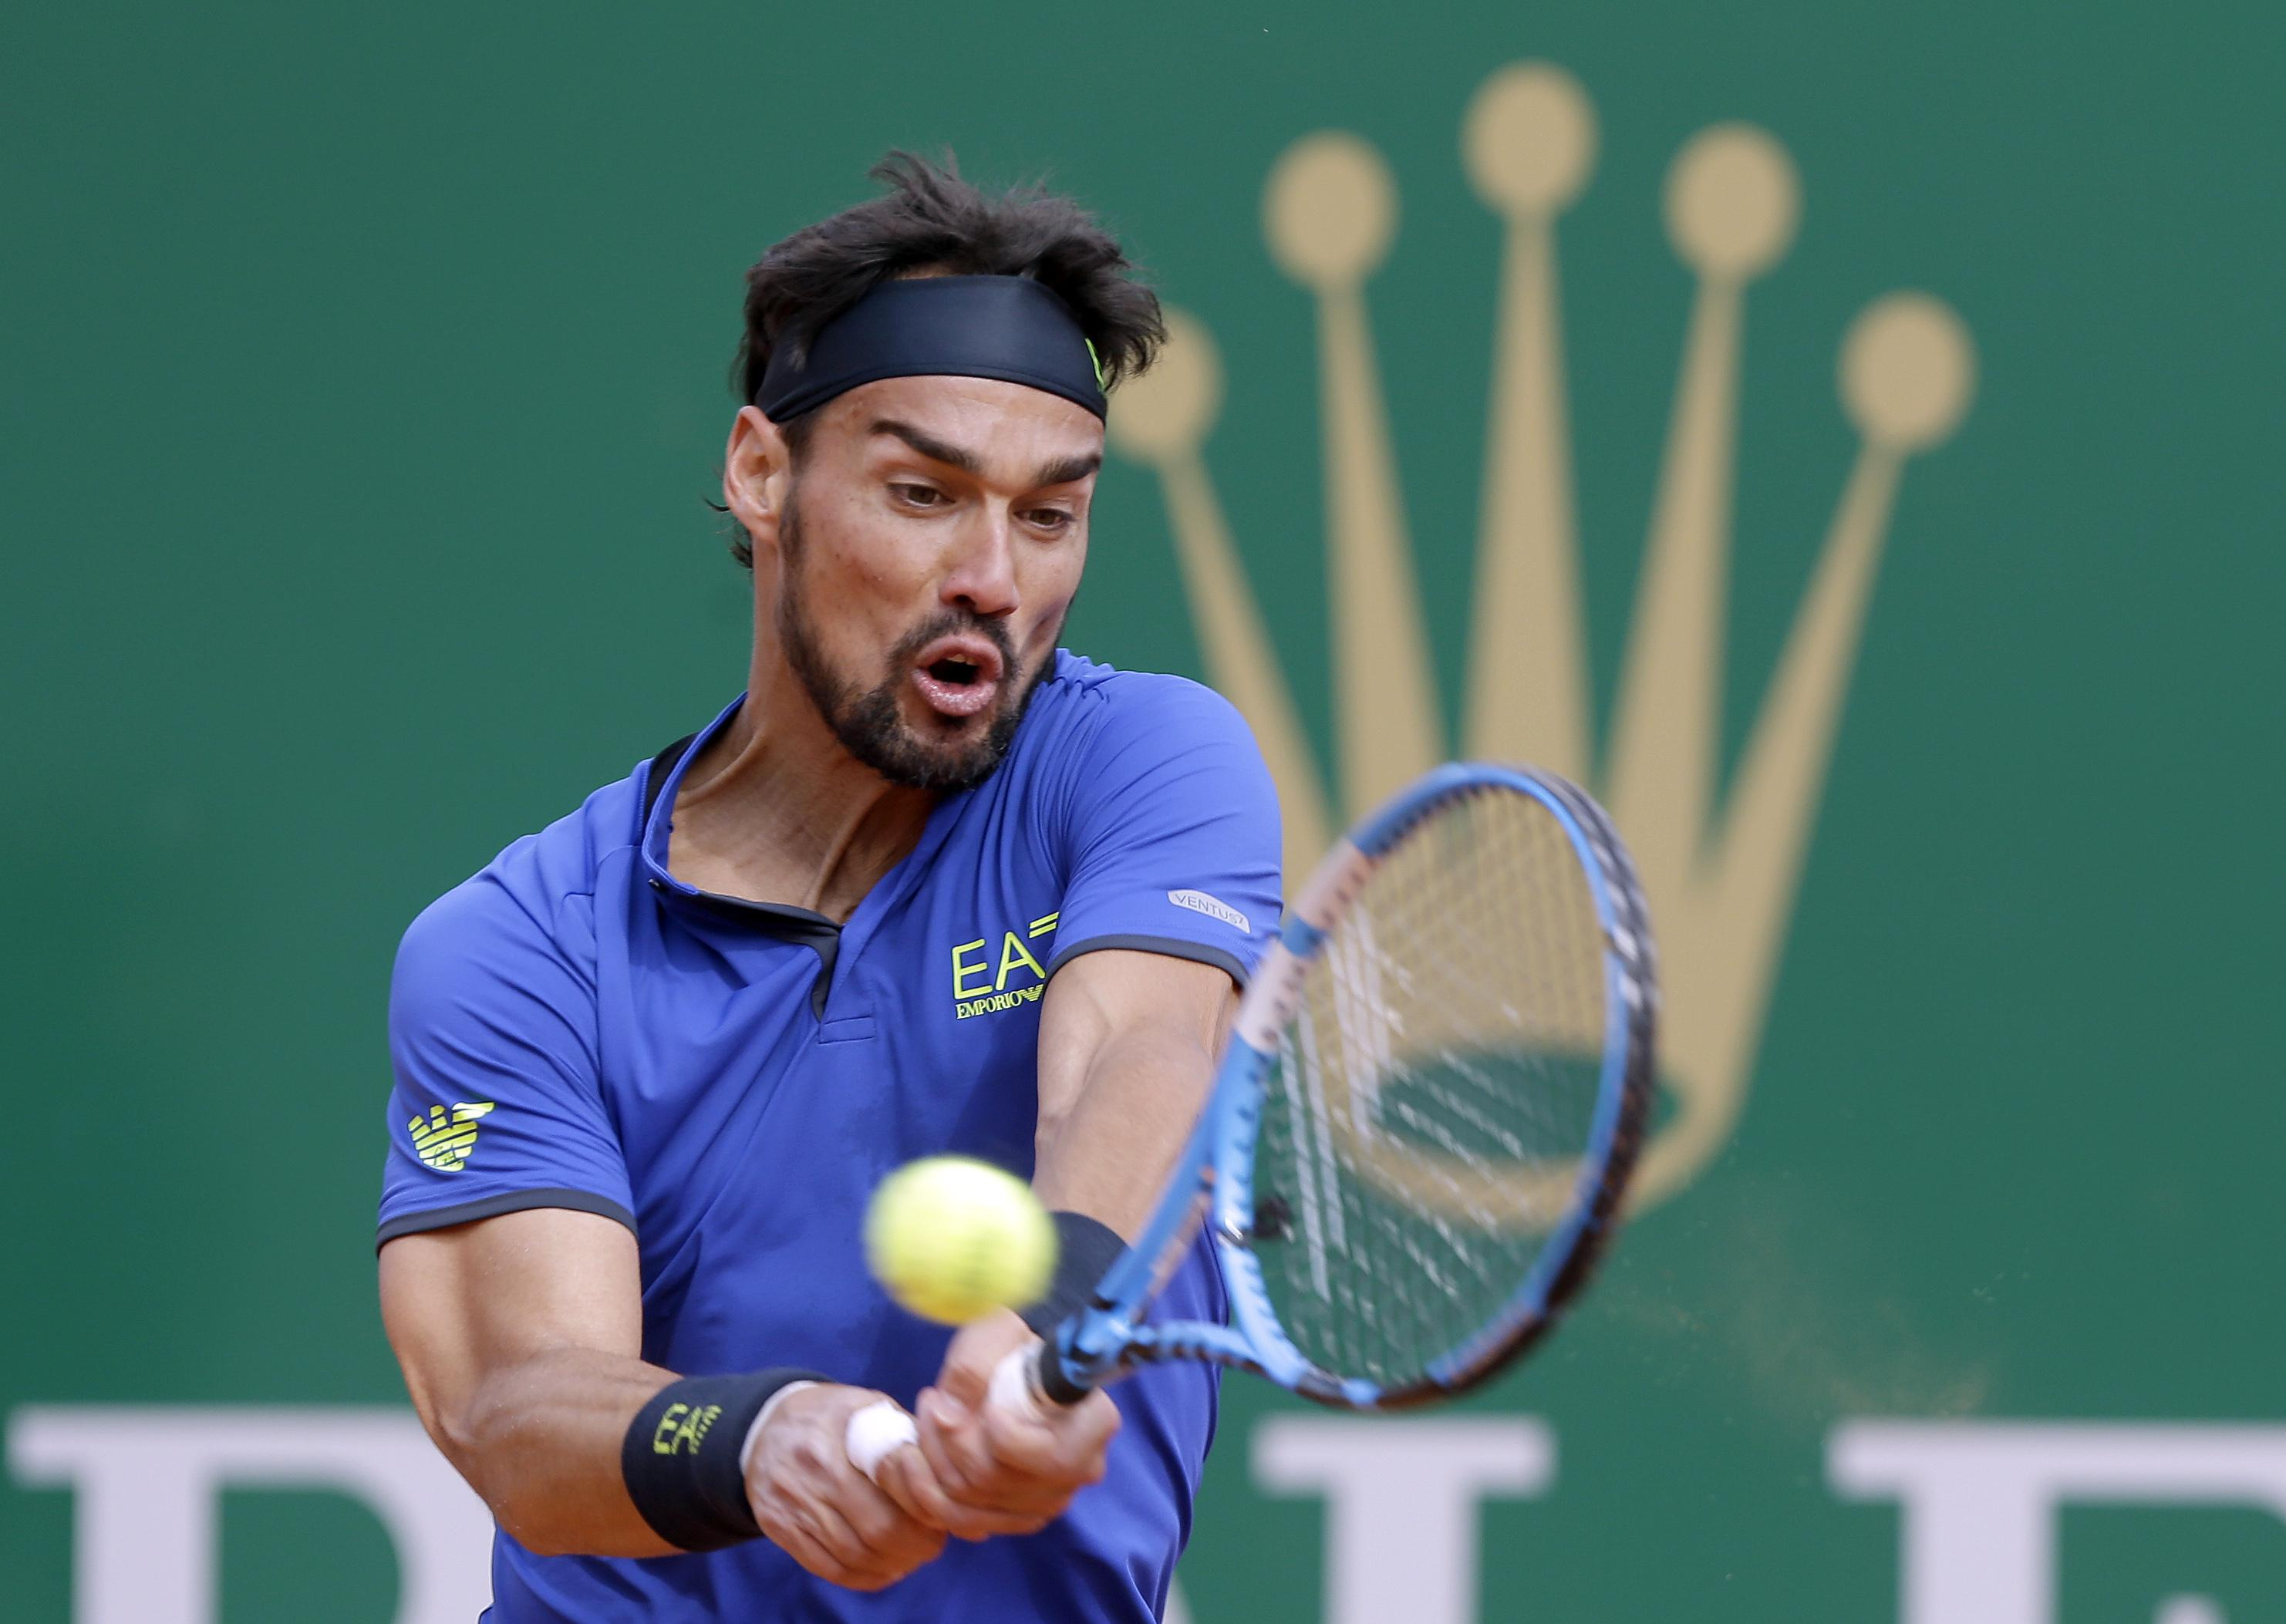 64b4548a034 Italy s Fabio Fognini returns the ball to Spain s Rafael Nadal during their  semifinal match of the